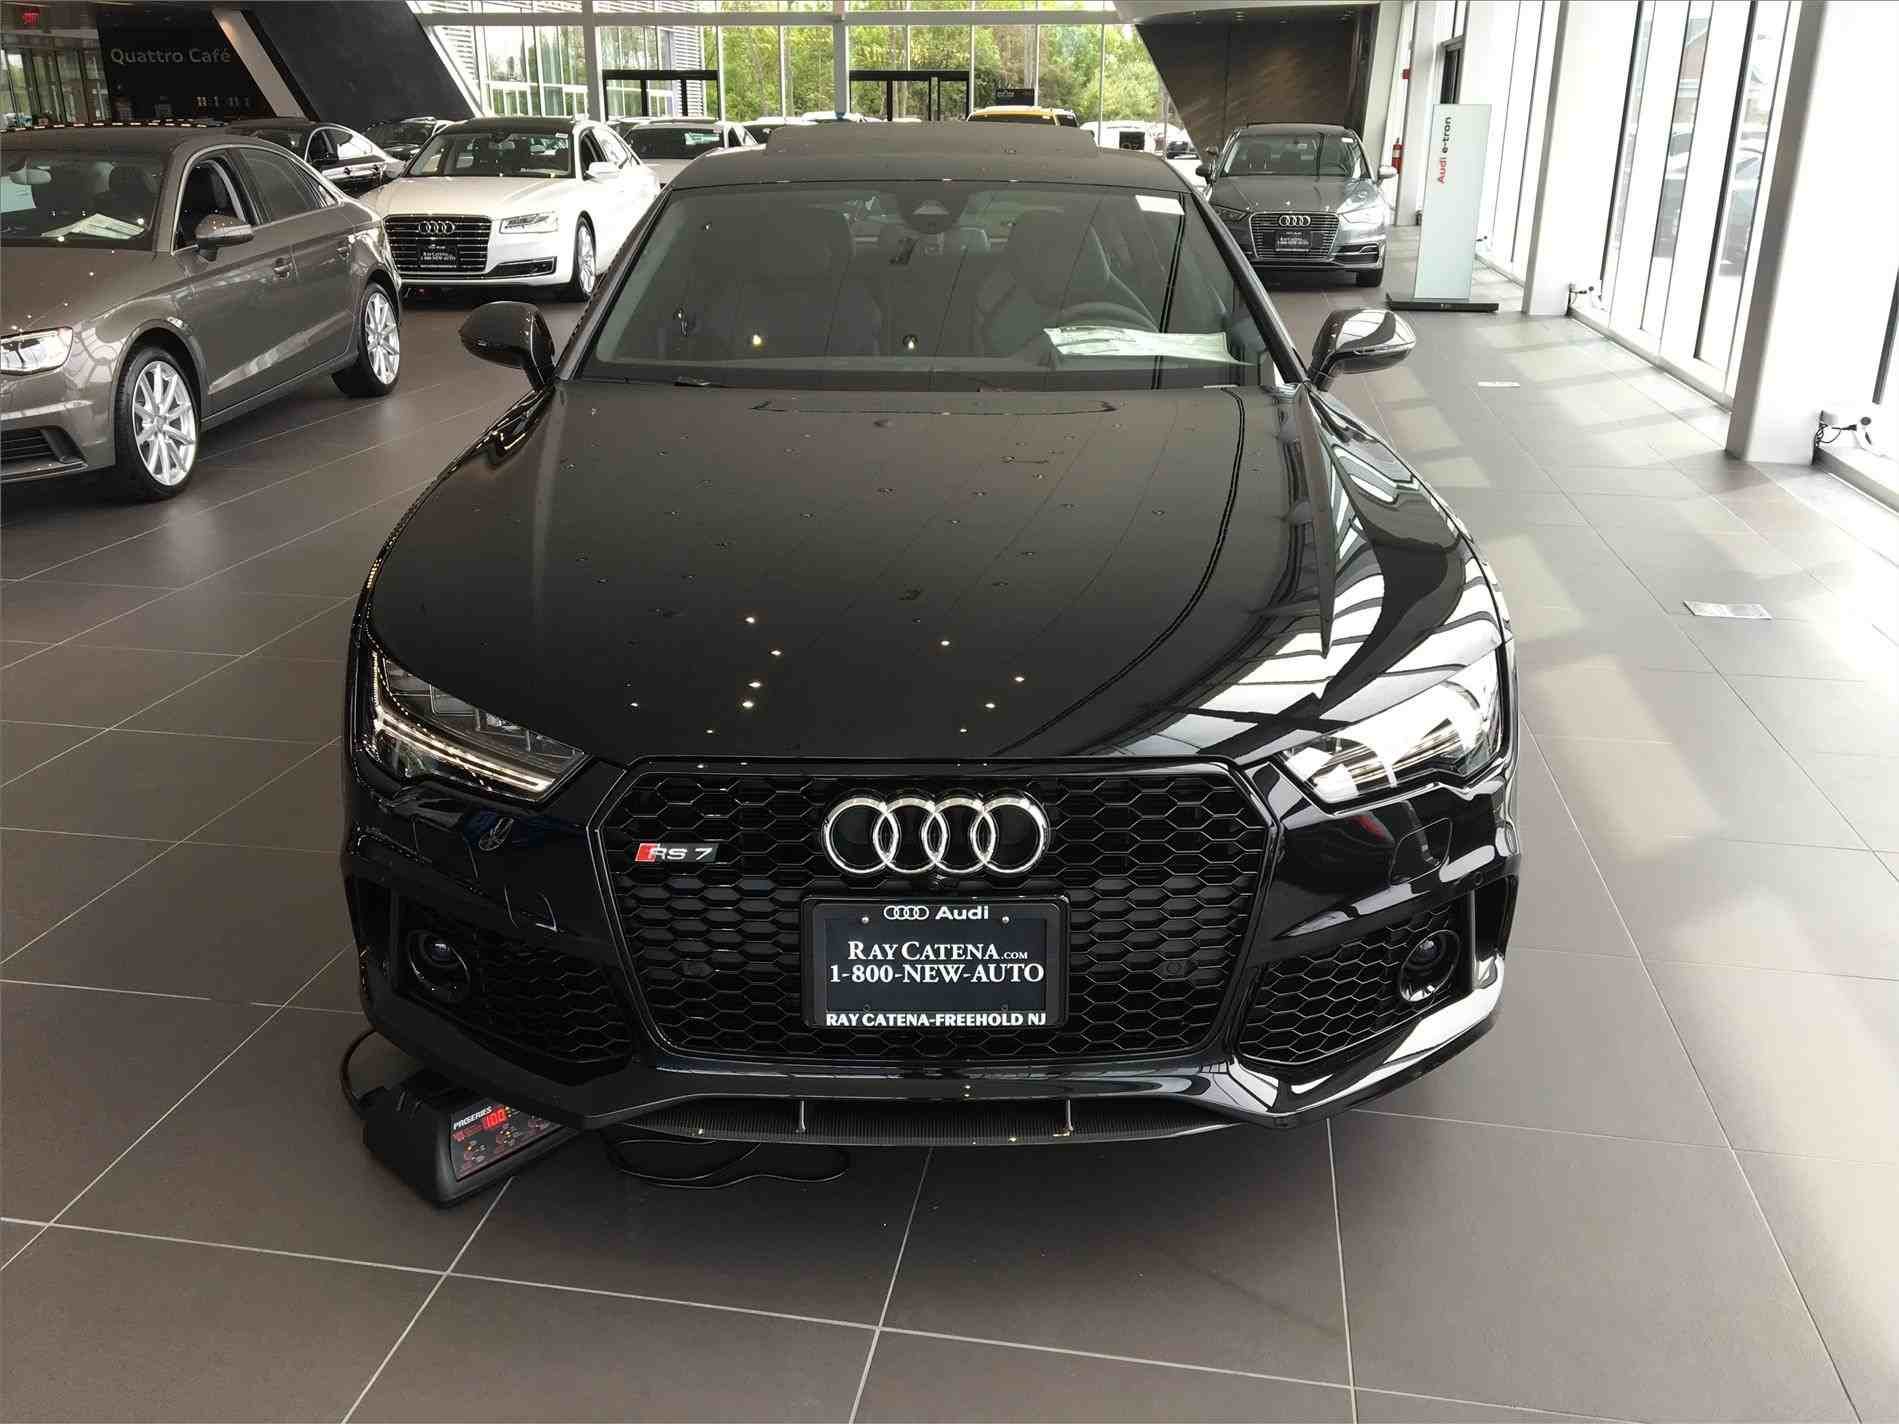 new cheap used cars for sale under 3000 car releaserhfarinapiada near me best of audi